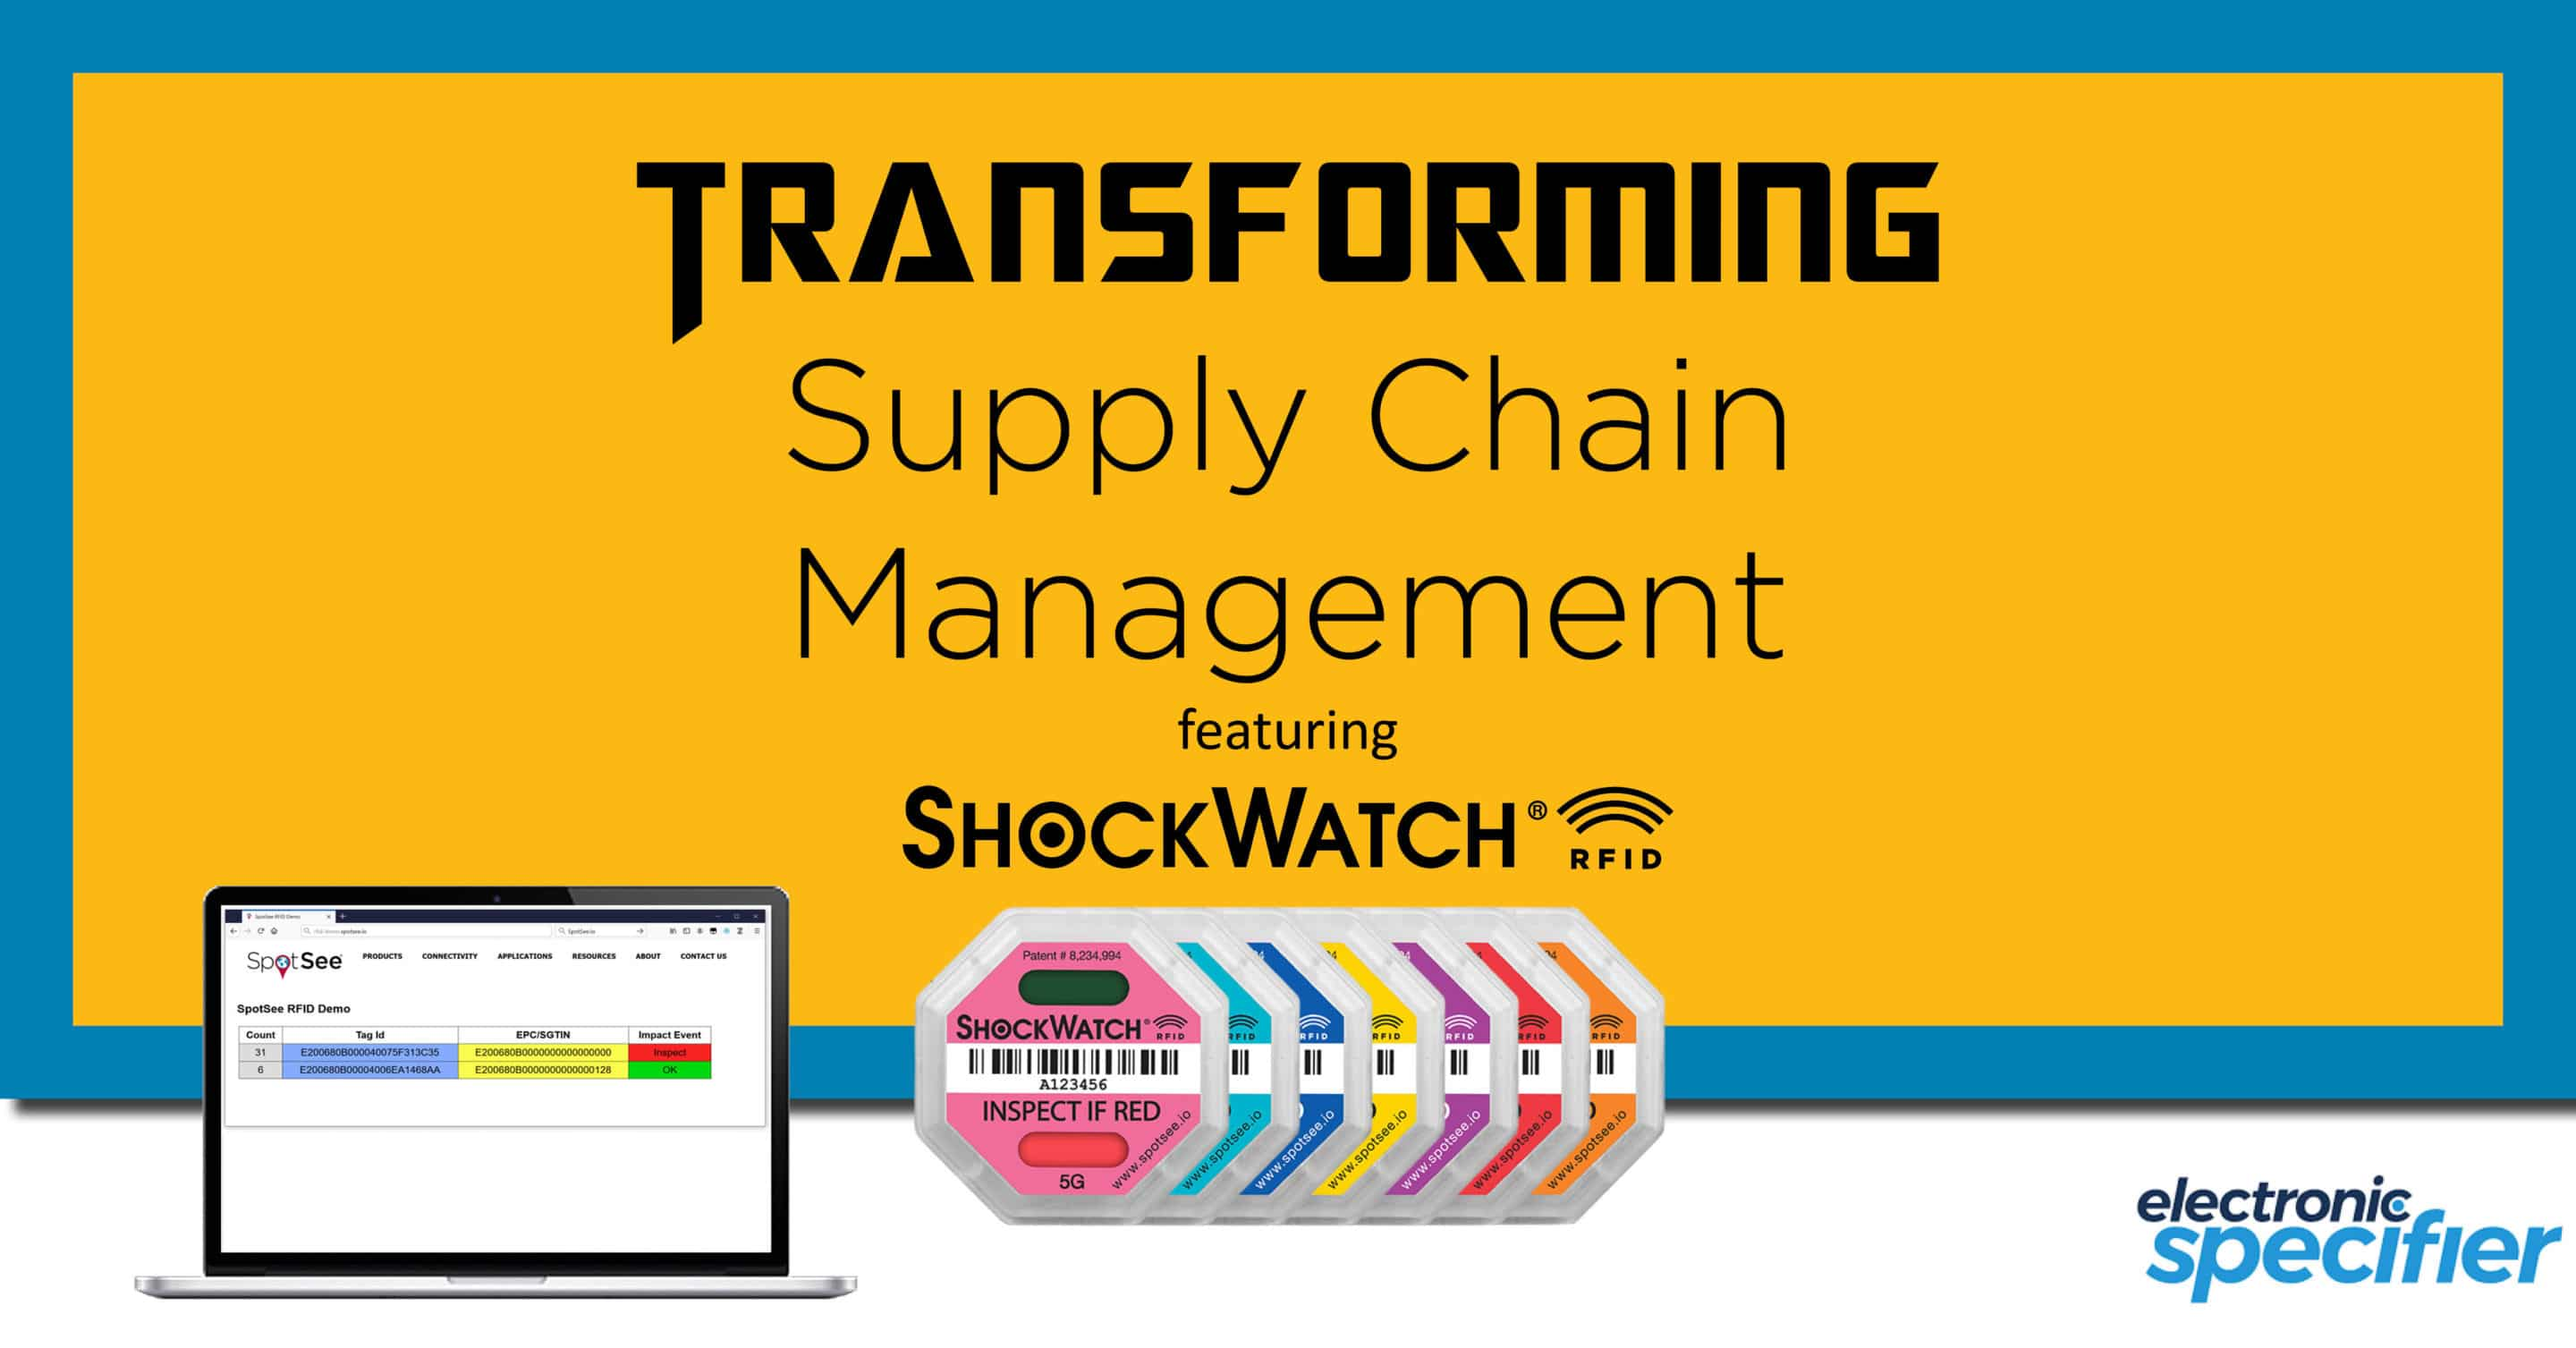 SpotSee Featured on Electronic Specifier: Transforming Supply Chain Management